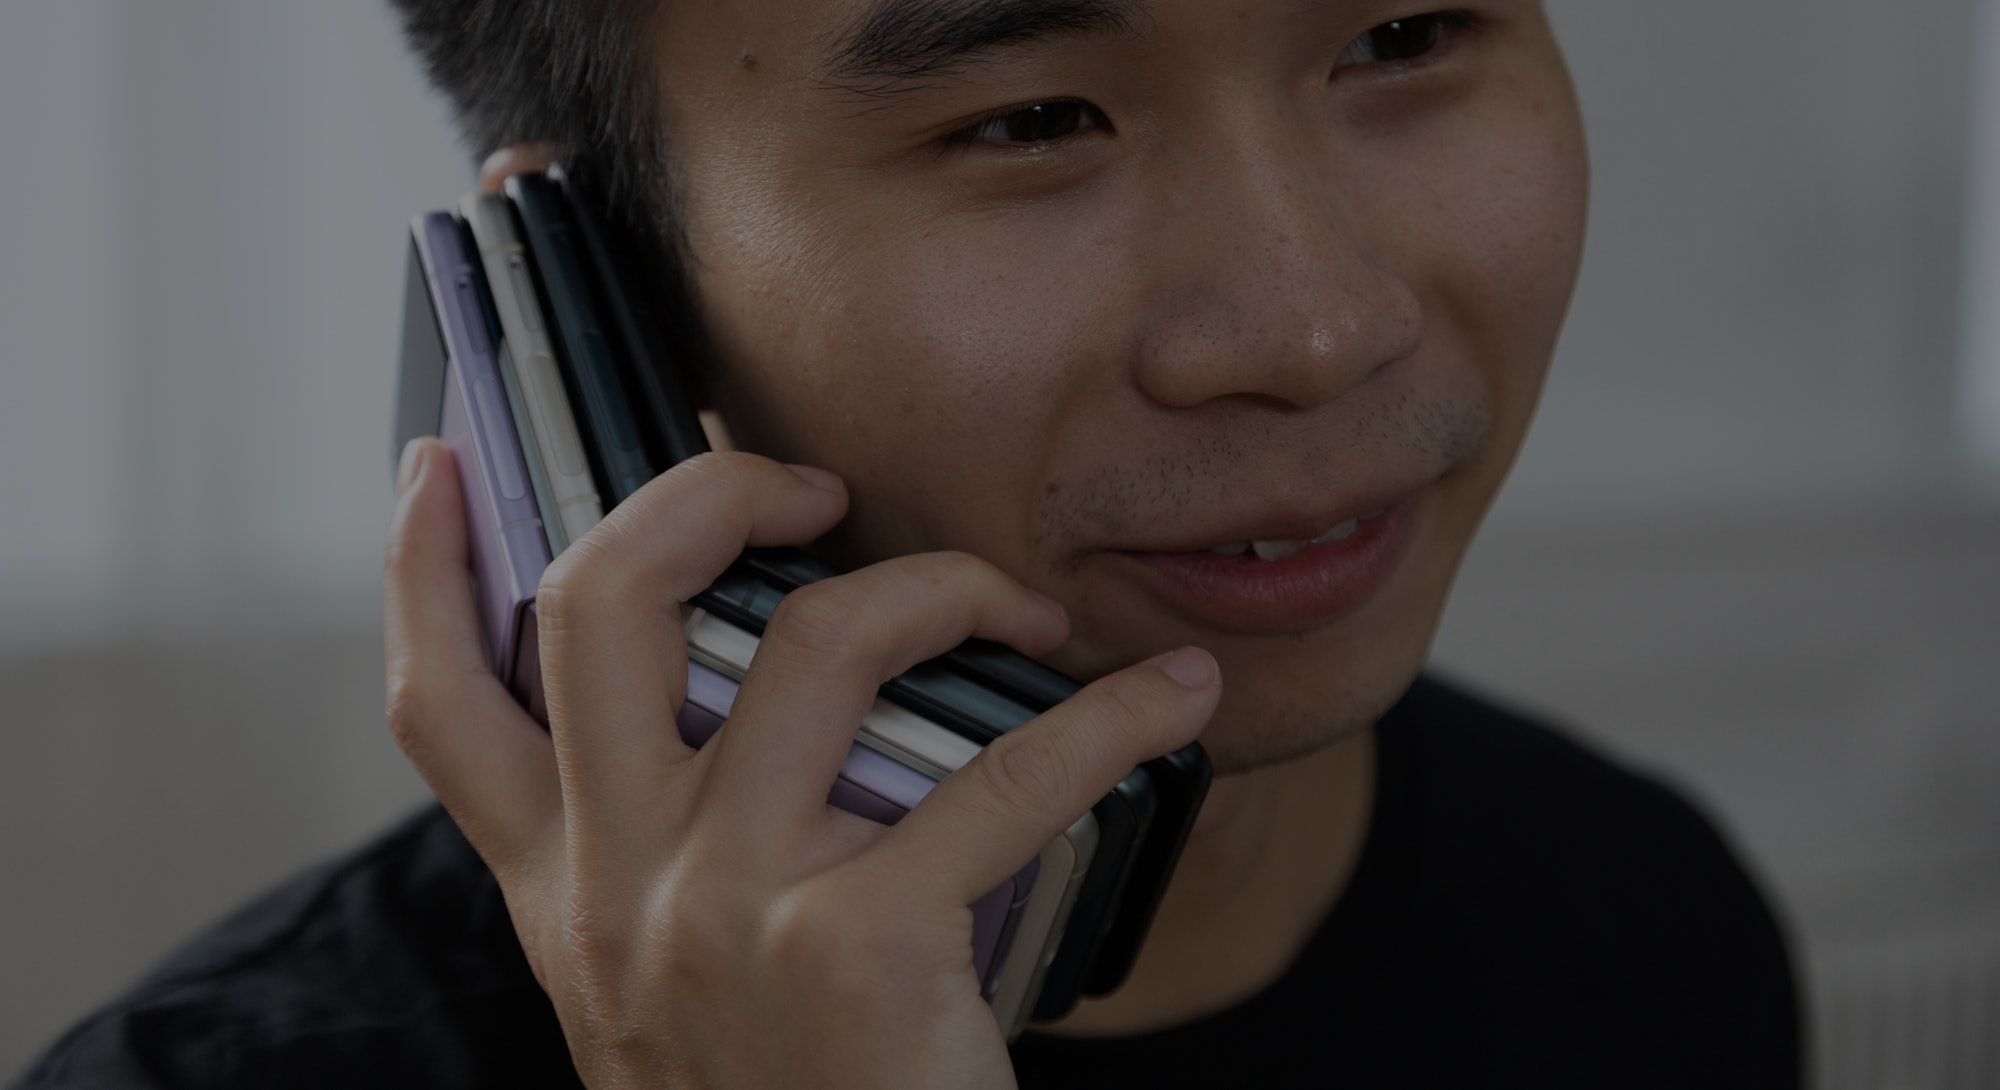 Holding a stack of four Samsung Galaxy Z Flip 3 foldable Android smartphones